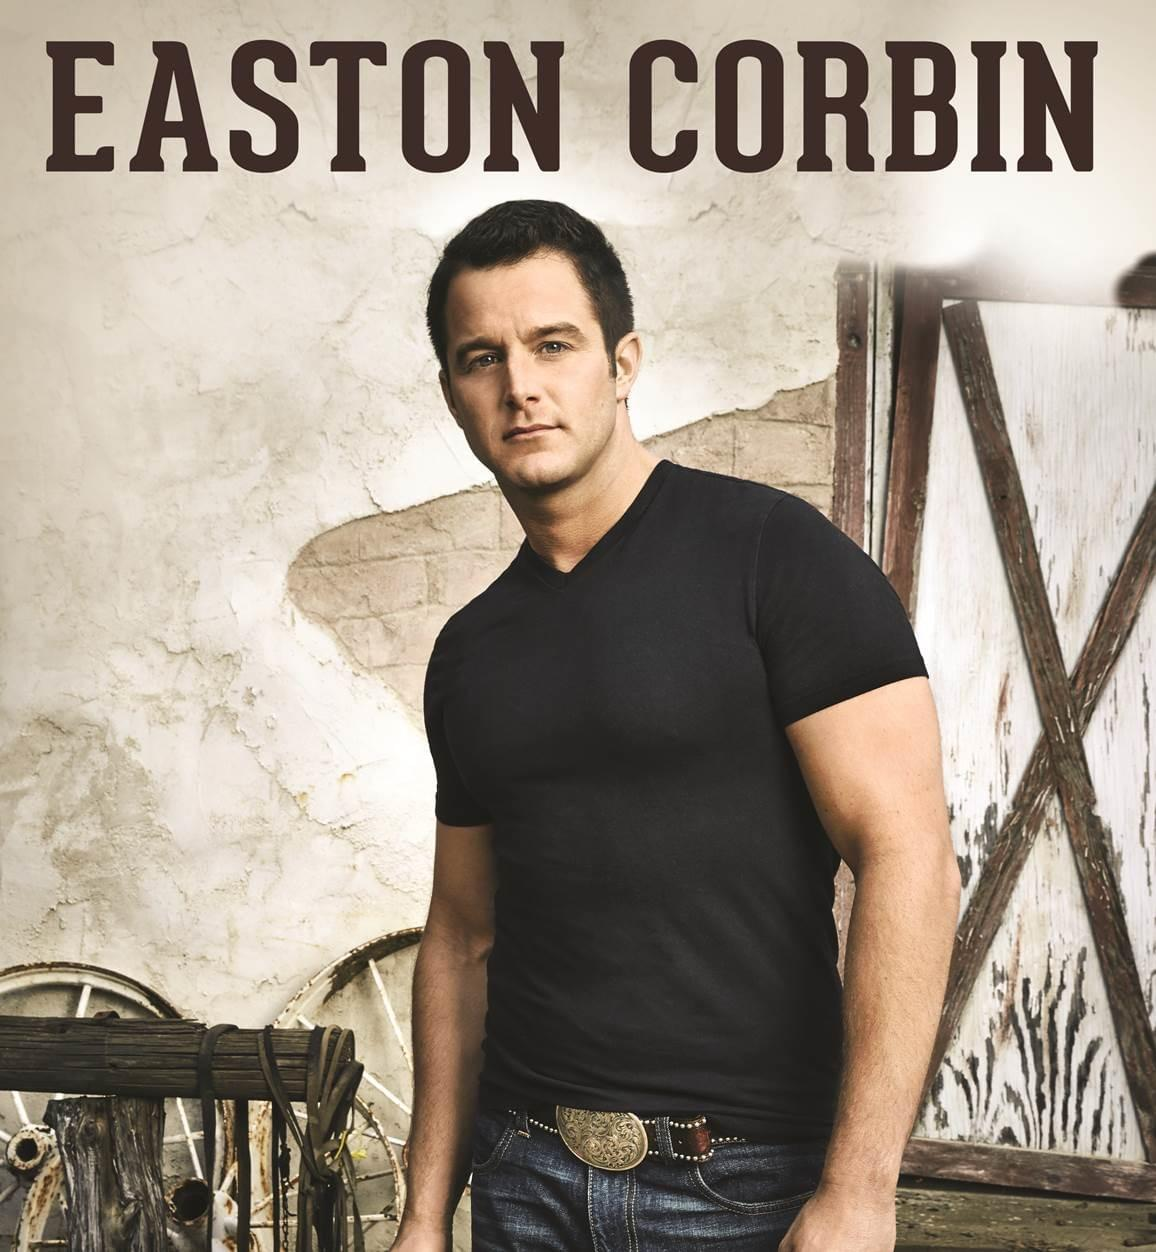 2/23: Easton Corbin at The Diamond Center